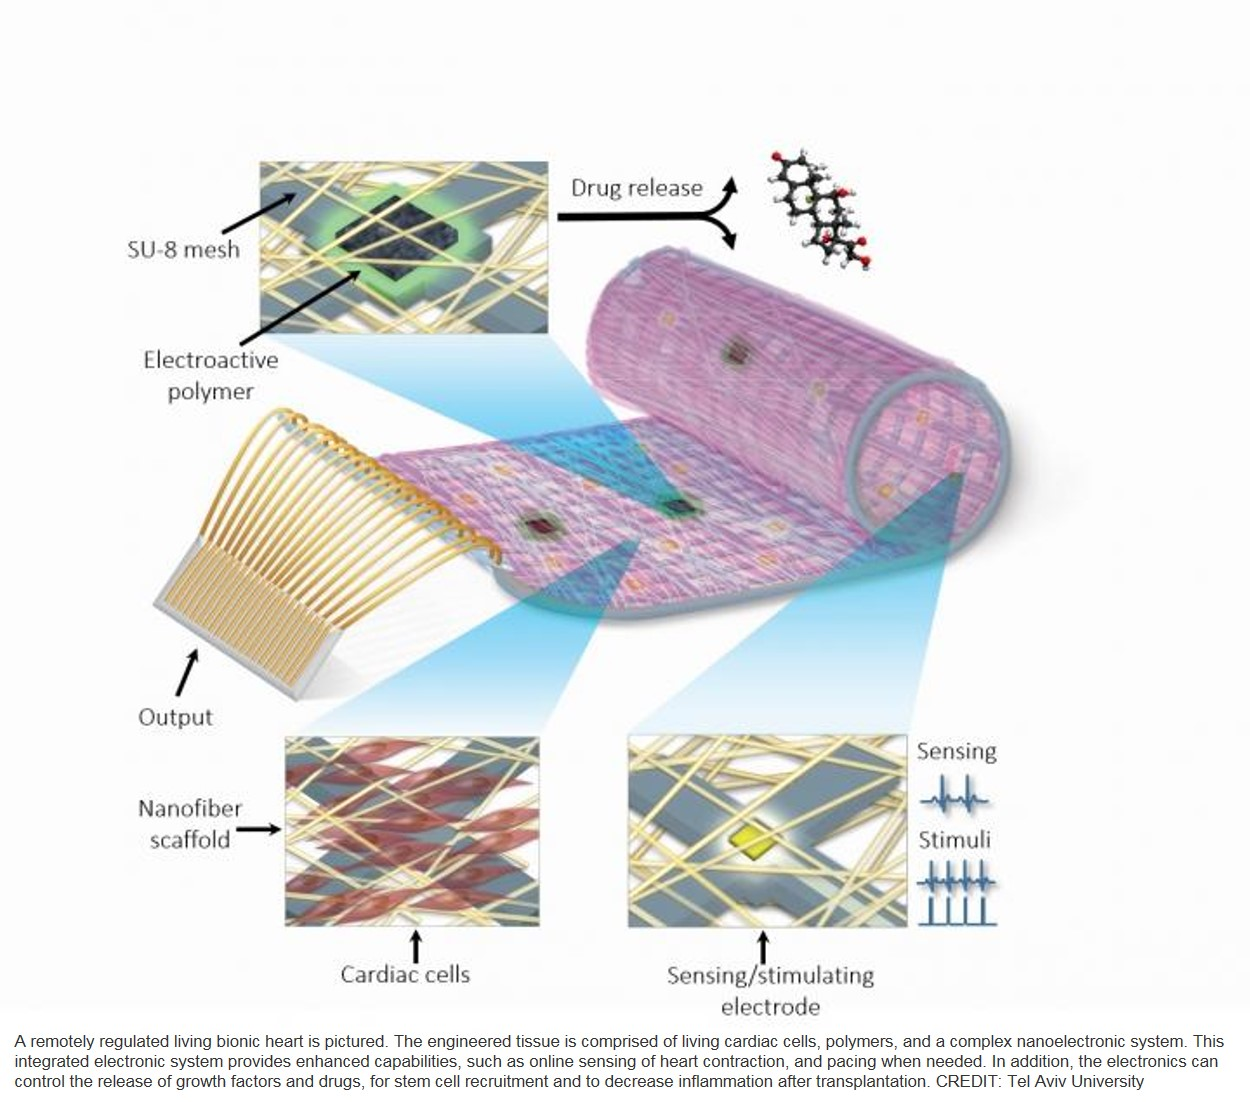 Cardiac patch with electronics to treat and deliver drugs to diseased heart